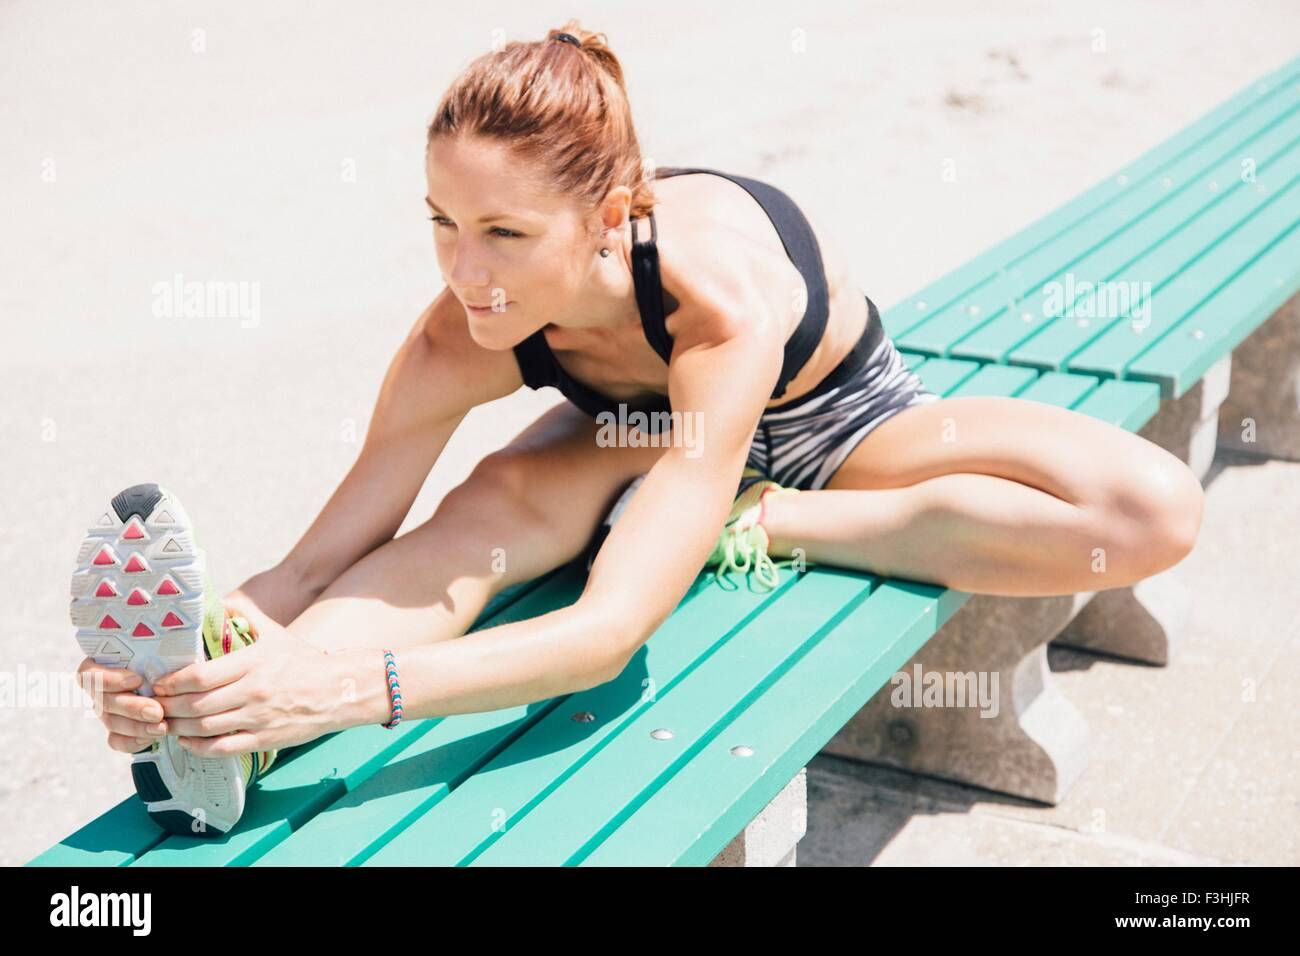 Mid adult woman sitting on bench, stretching - Stock Image